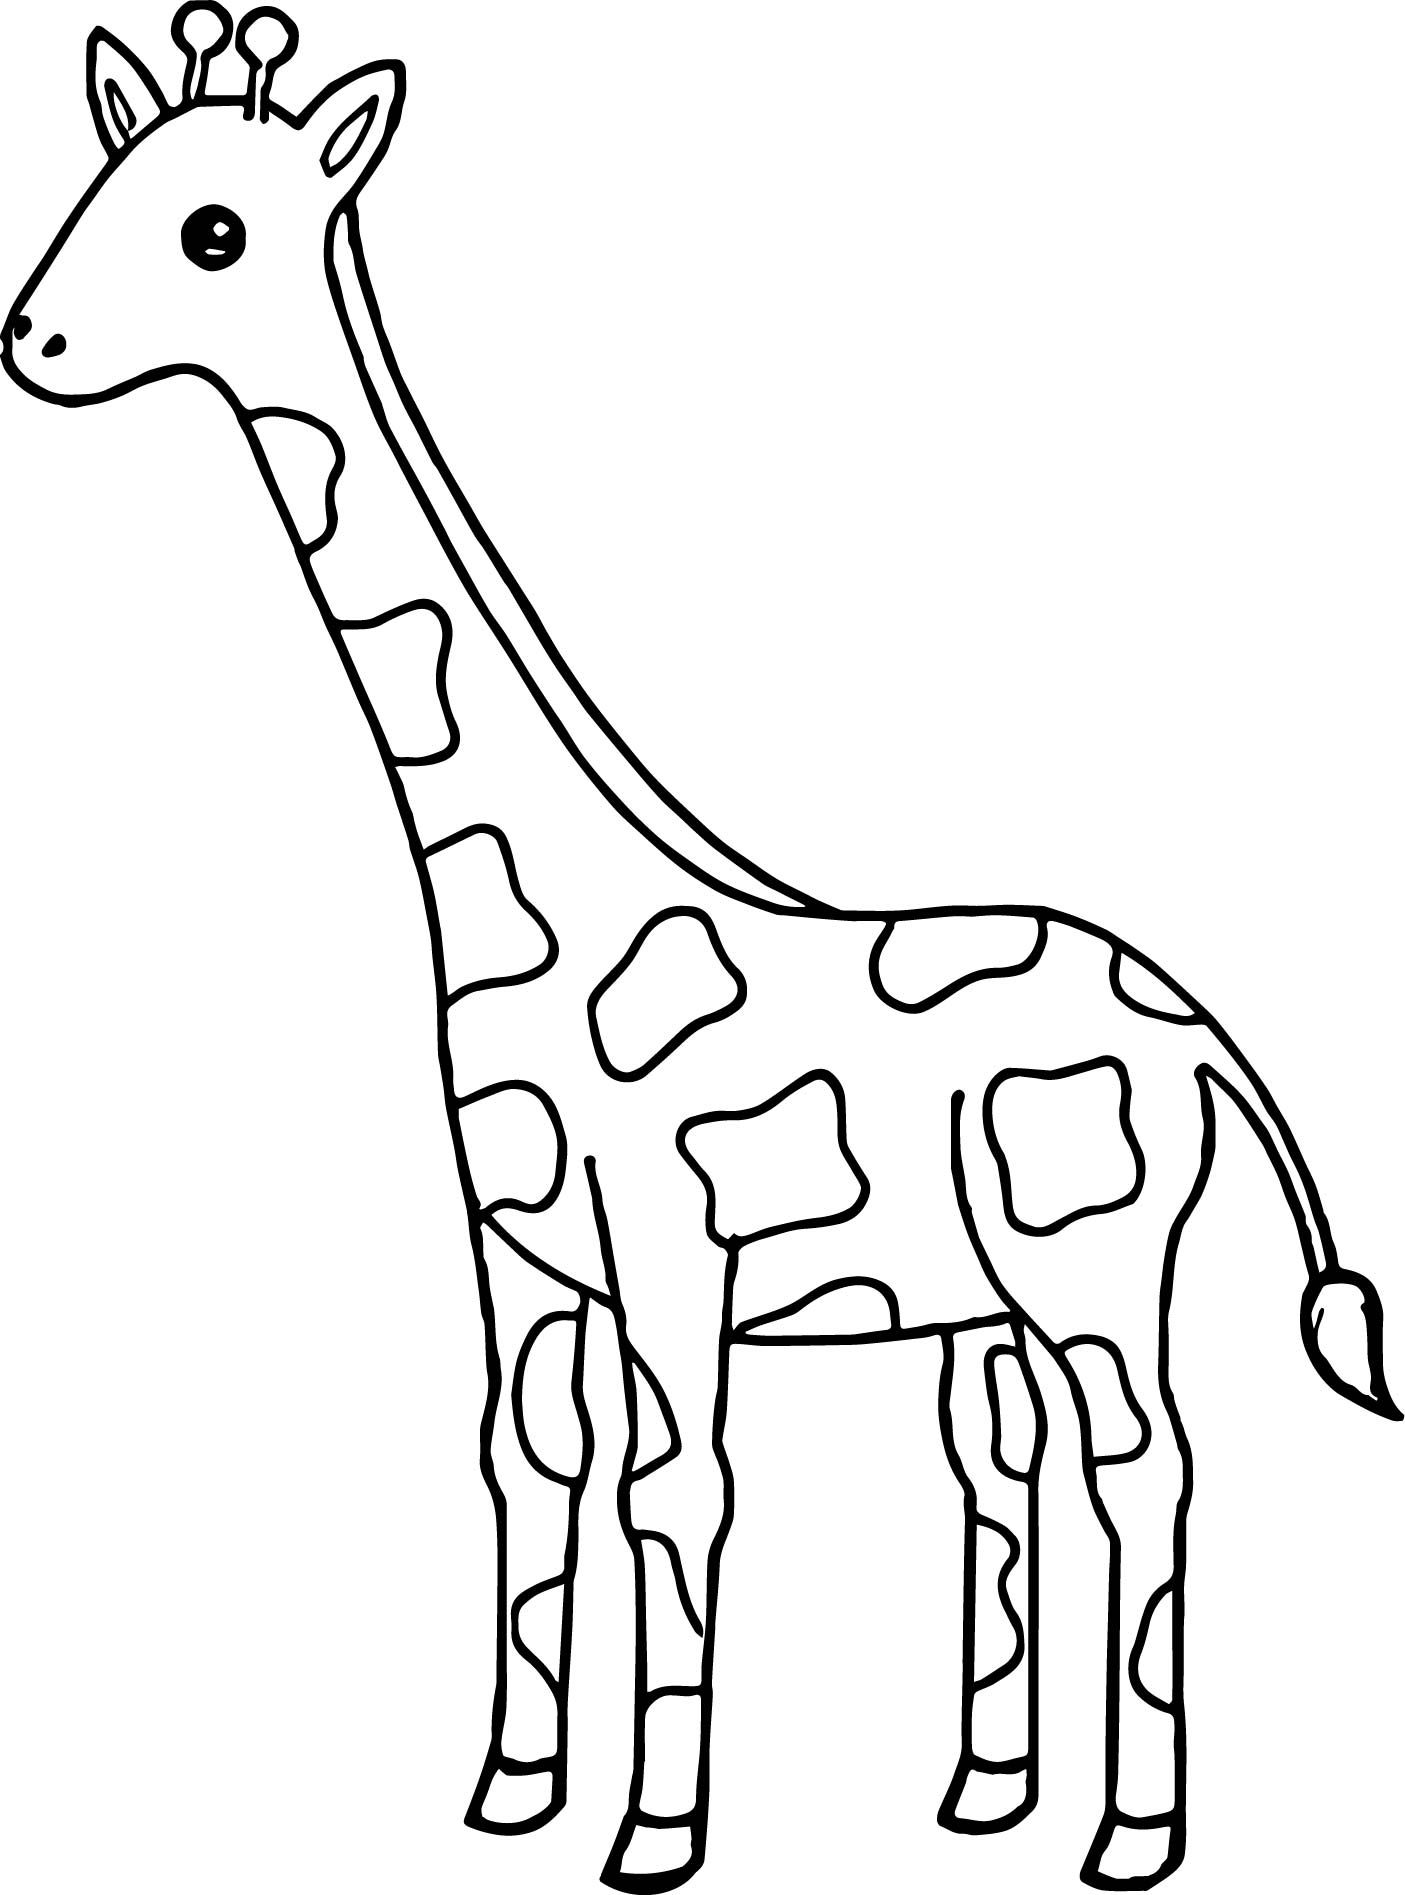 nice Tall Giraffe Coloring Page (With images) Giraffe